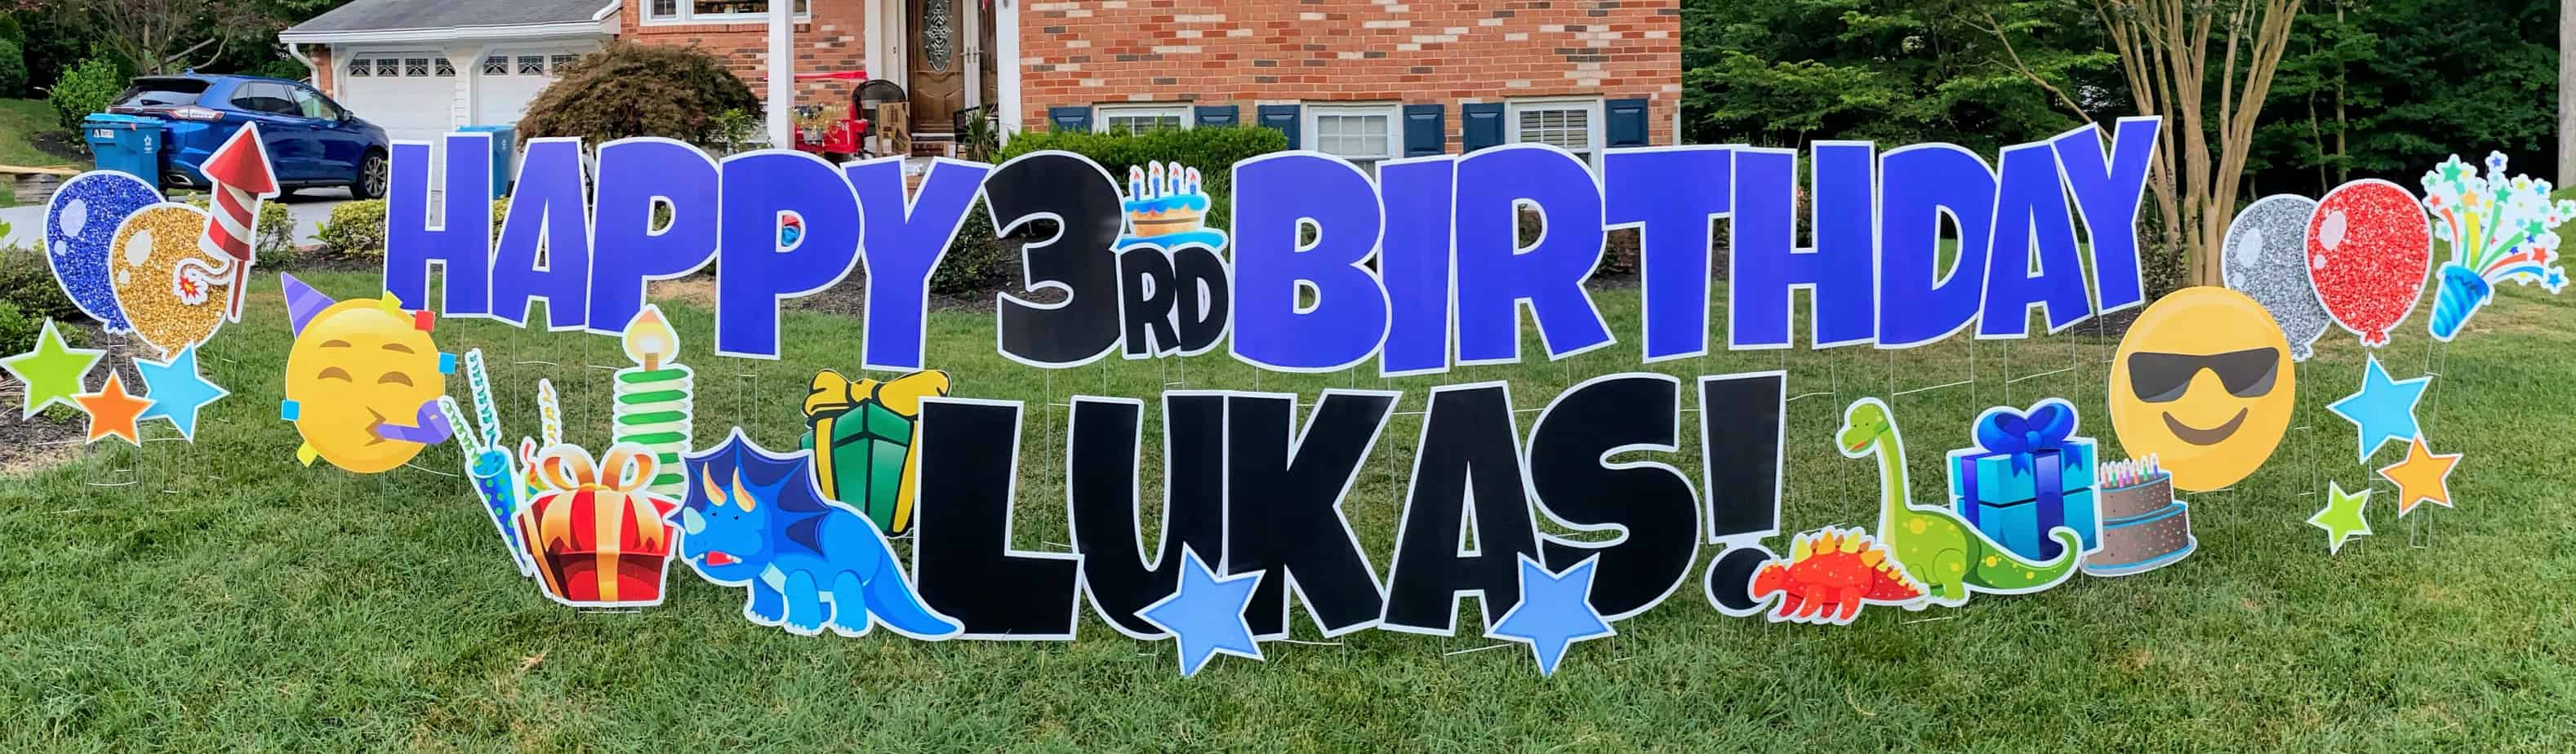 Northern Virginia - springfield virginia yard card signs for birthdays